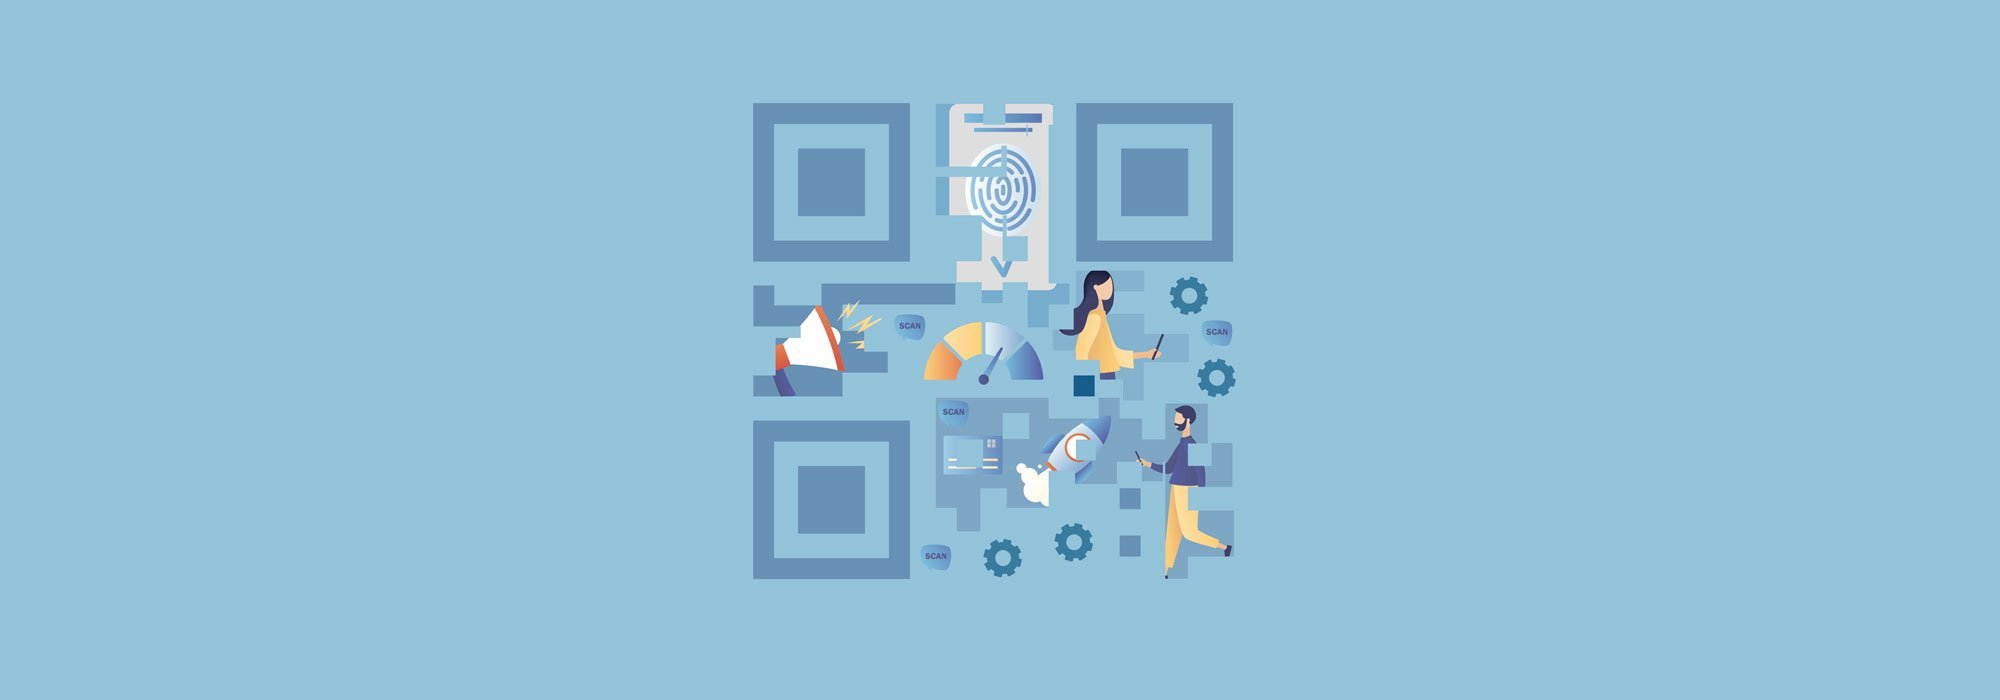 QR Code e marketing senza contatto